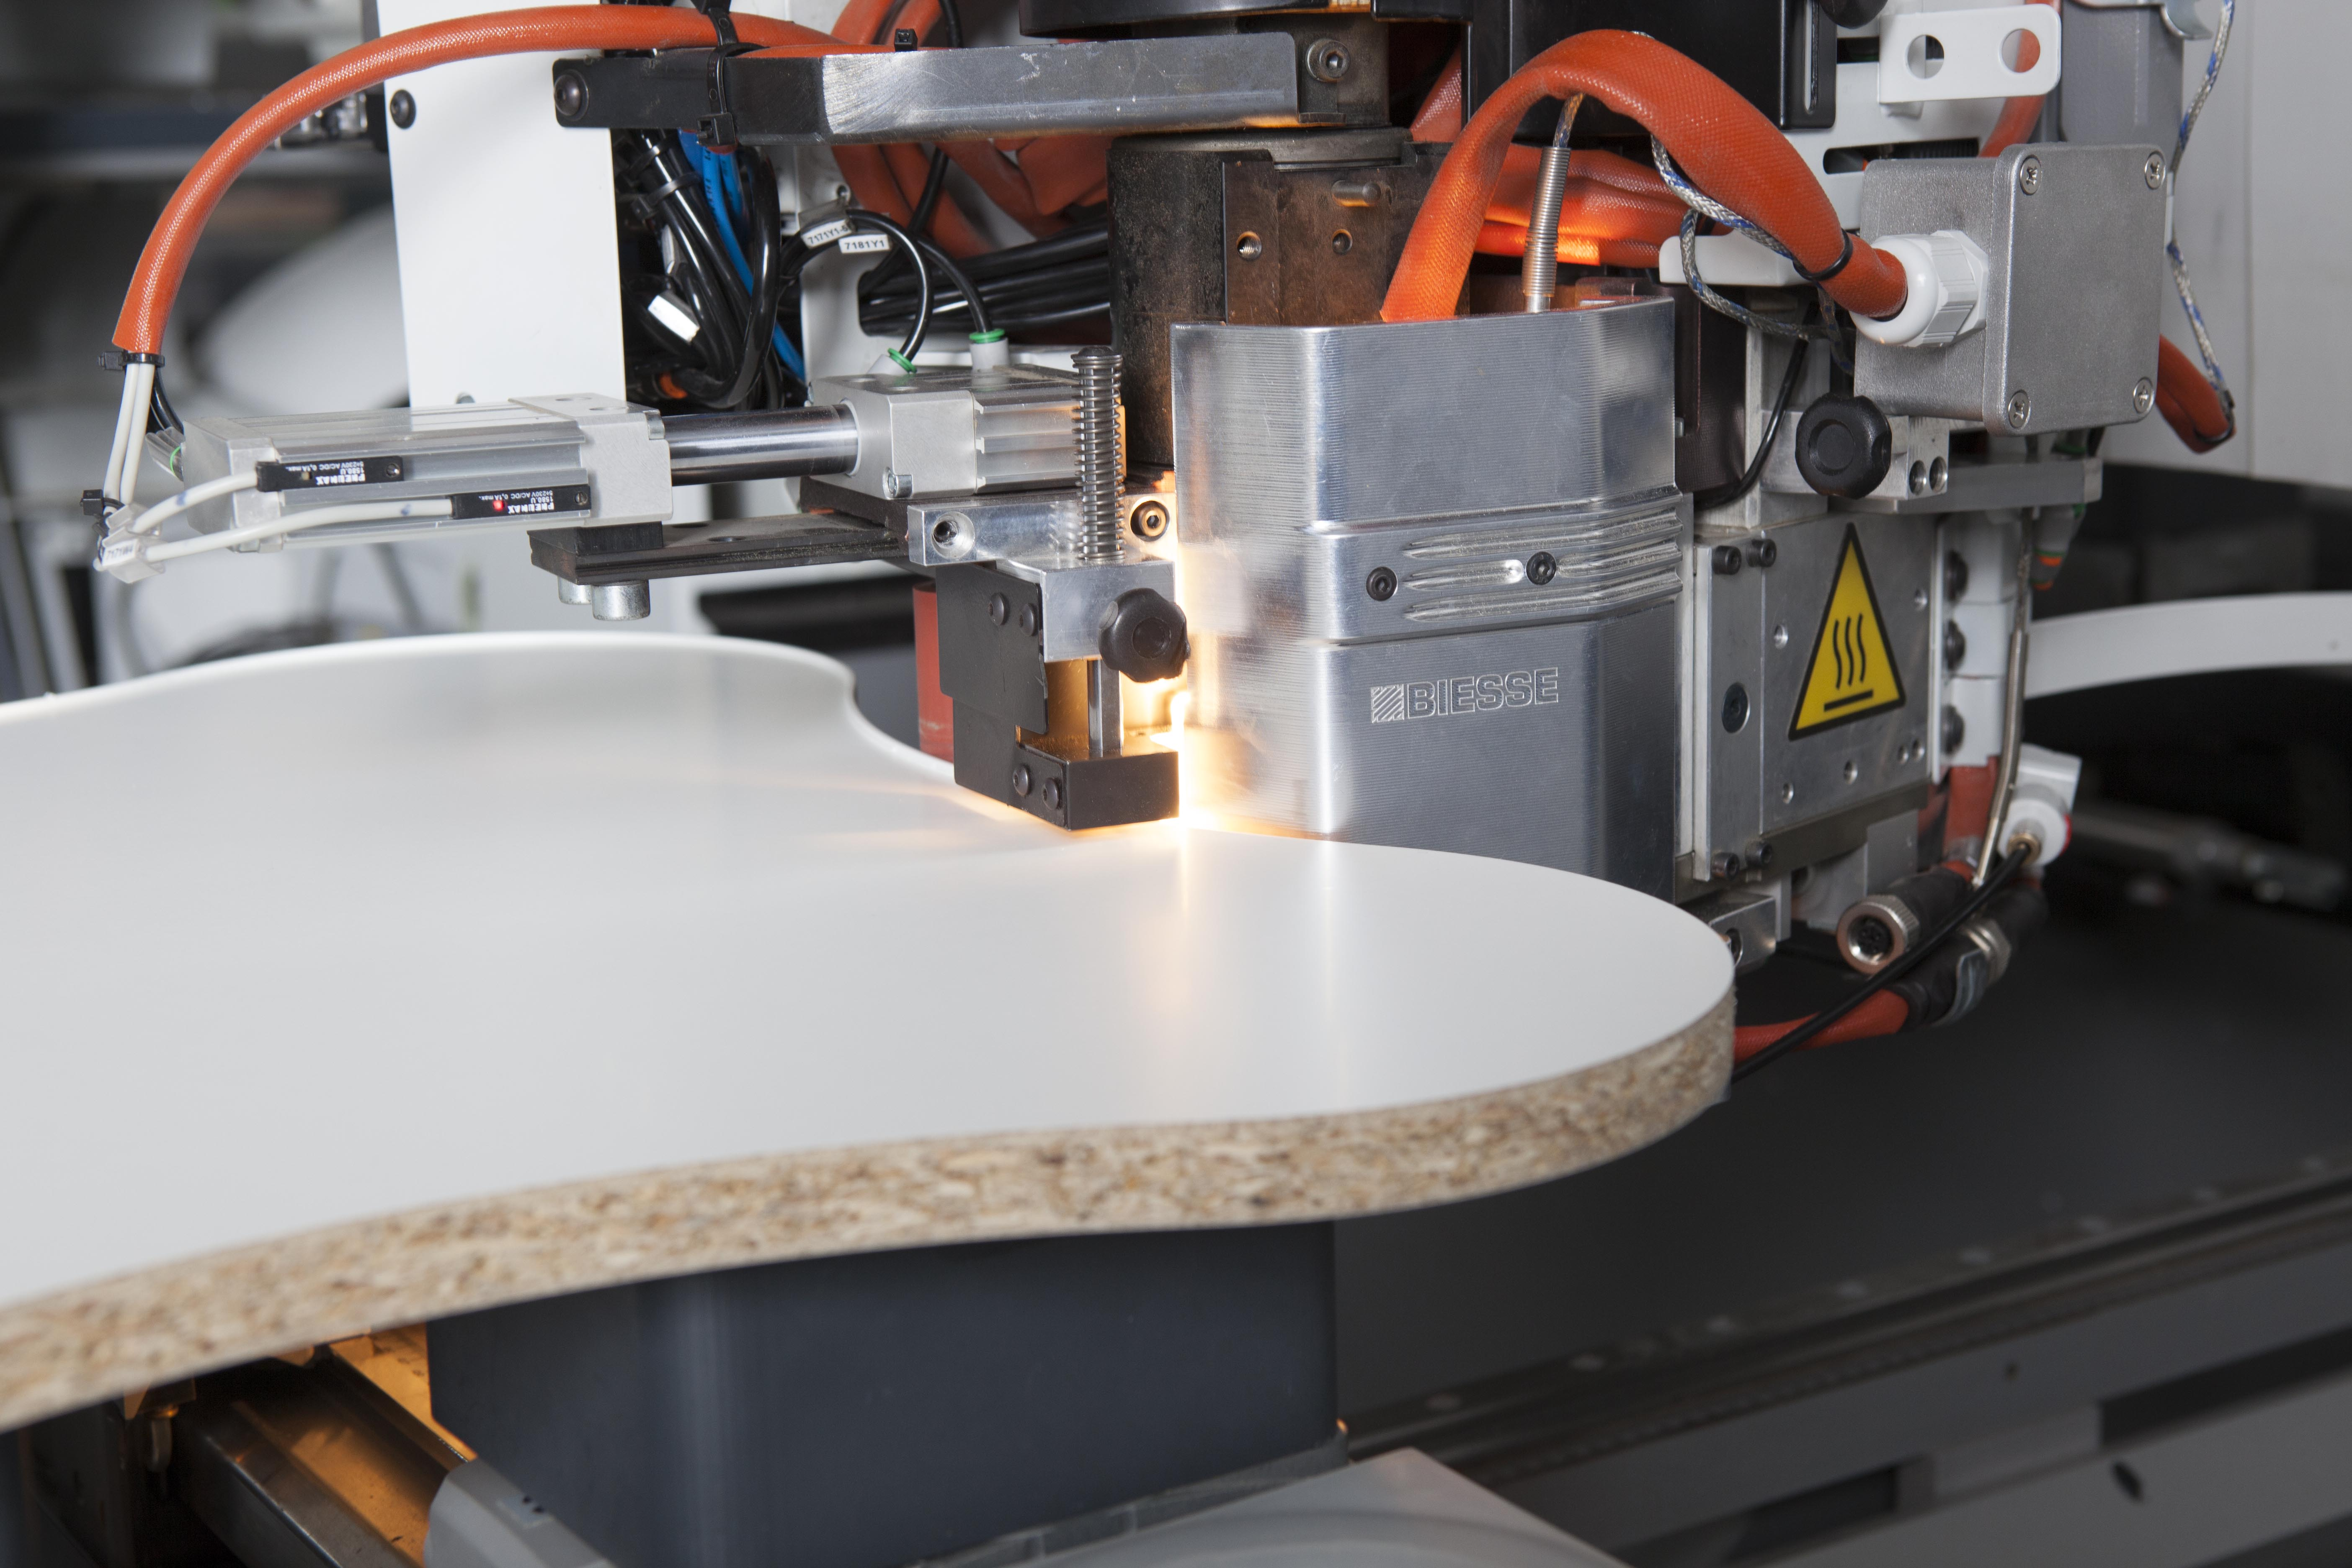 AWFS Debut: New RayForce System Technology eliminates glue lines, maximizes quality